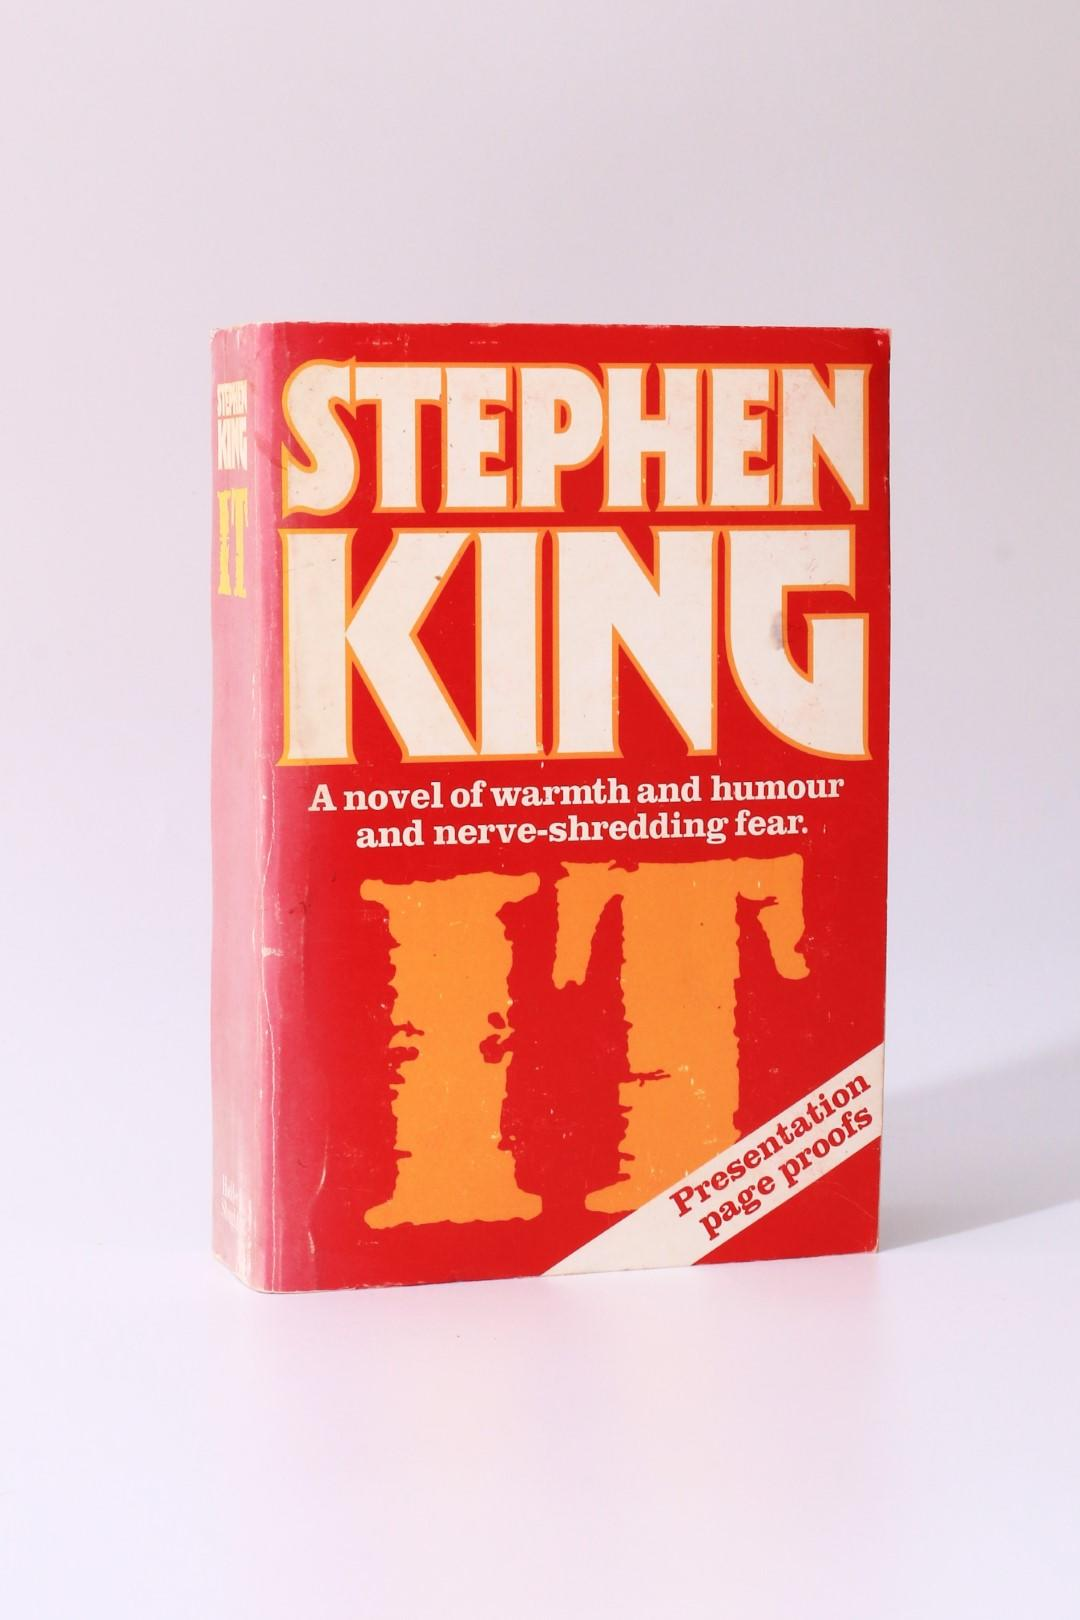 Stephen King - IT - Uncorrected Proof - Hodder & Stoughton, 1986, Proof.